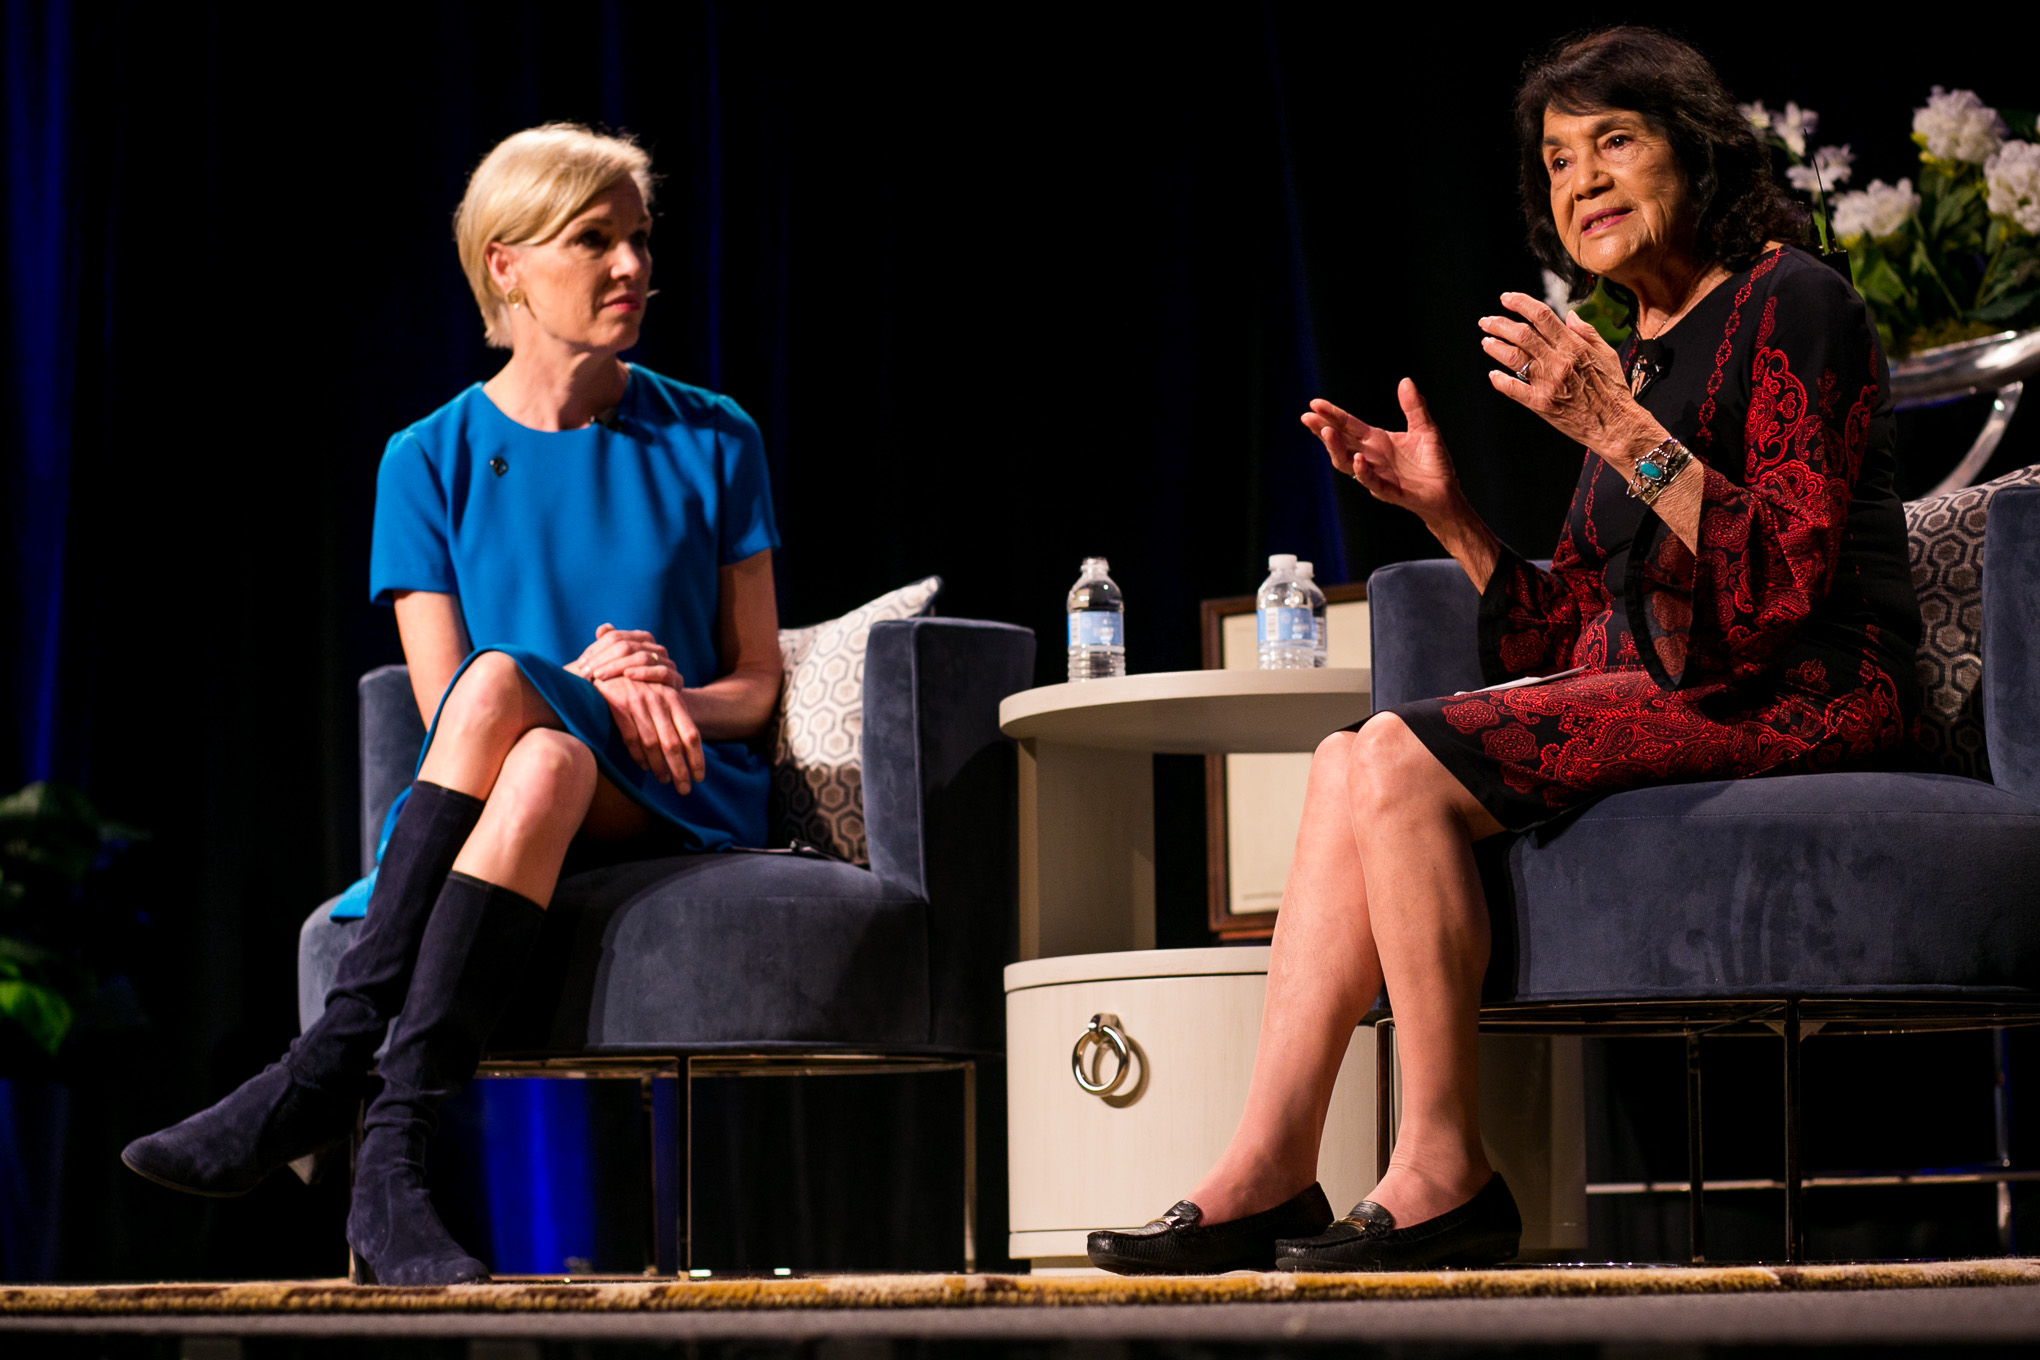 United Farmworkers of America Co-founder Dolores Huerta speaks about the importance for empowered feminist. Photo by Kathryn Boyd-Batstone